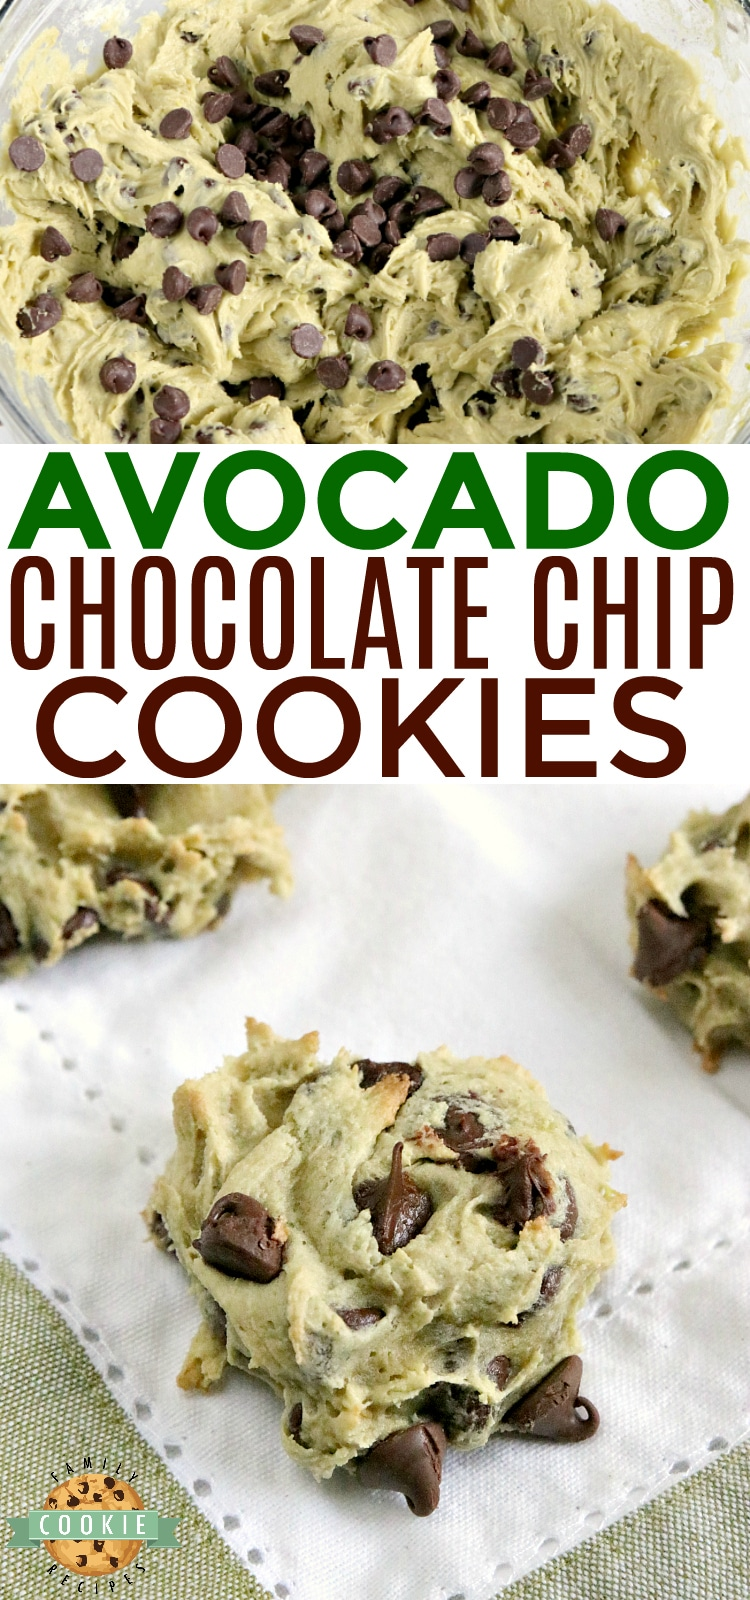 Avocado Chocolate Chip Cookies are soft, chewy and delicious! These chocolate chip cookies are made with avocado instead of butter - you've got to try it sometime! via @familycookierecipes